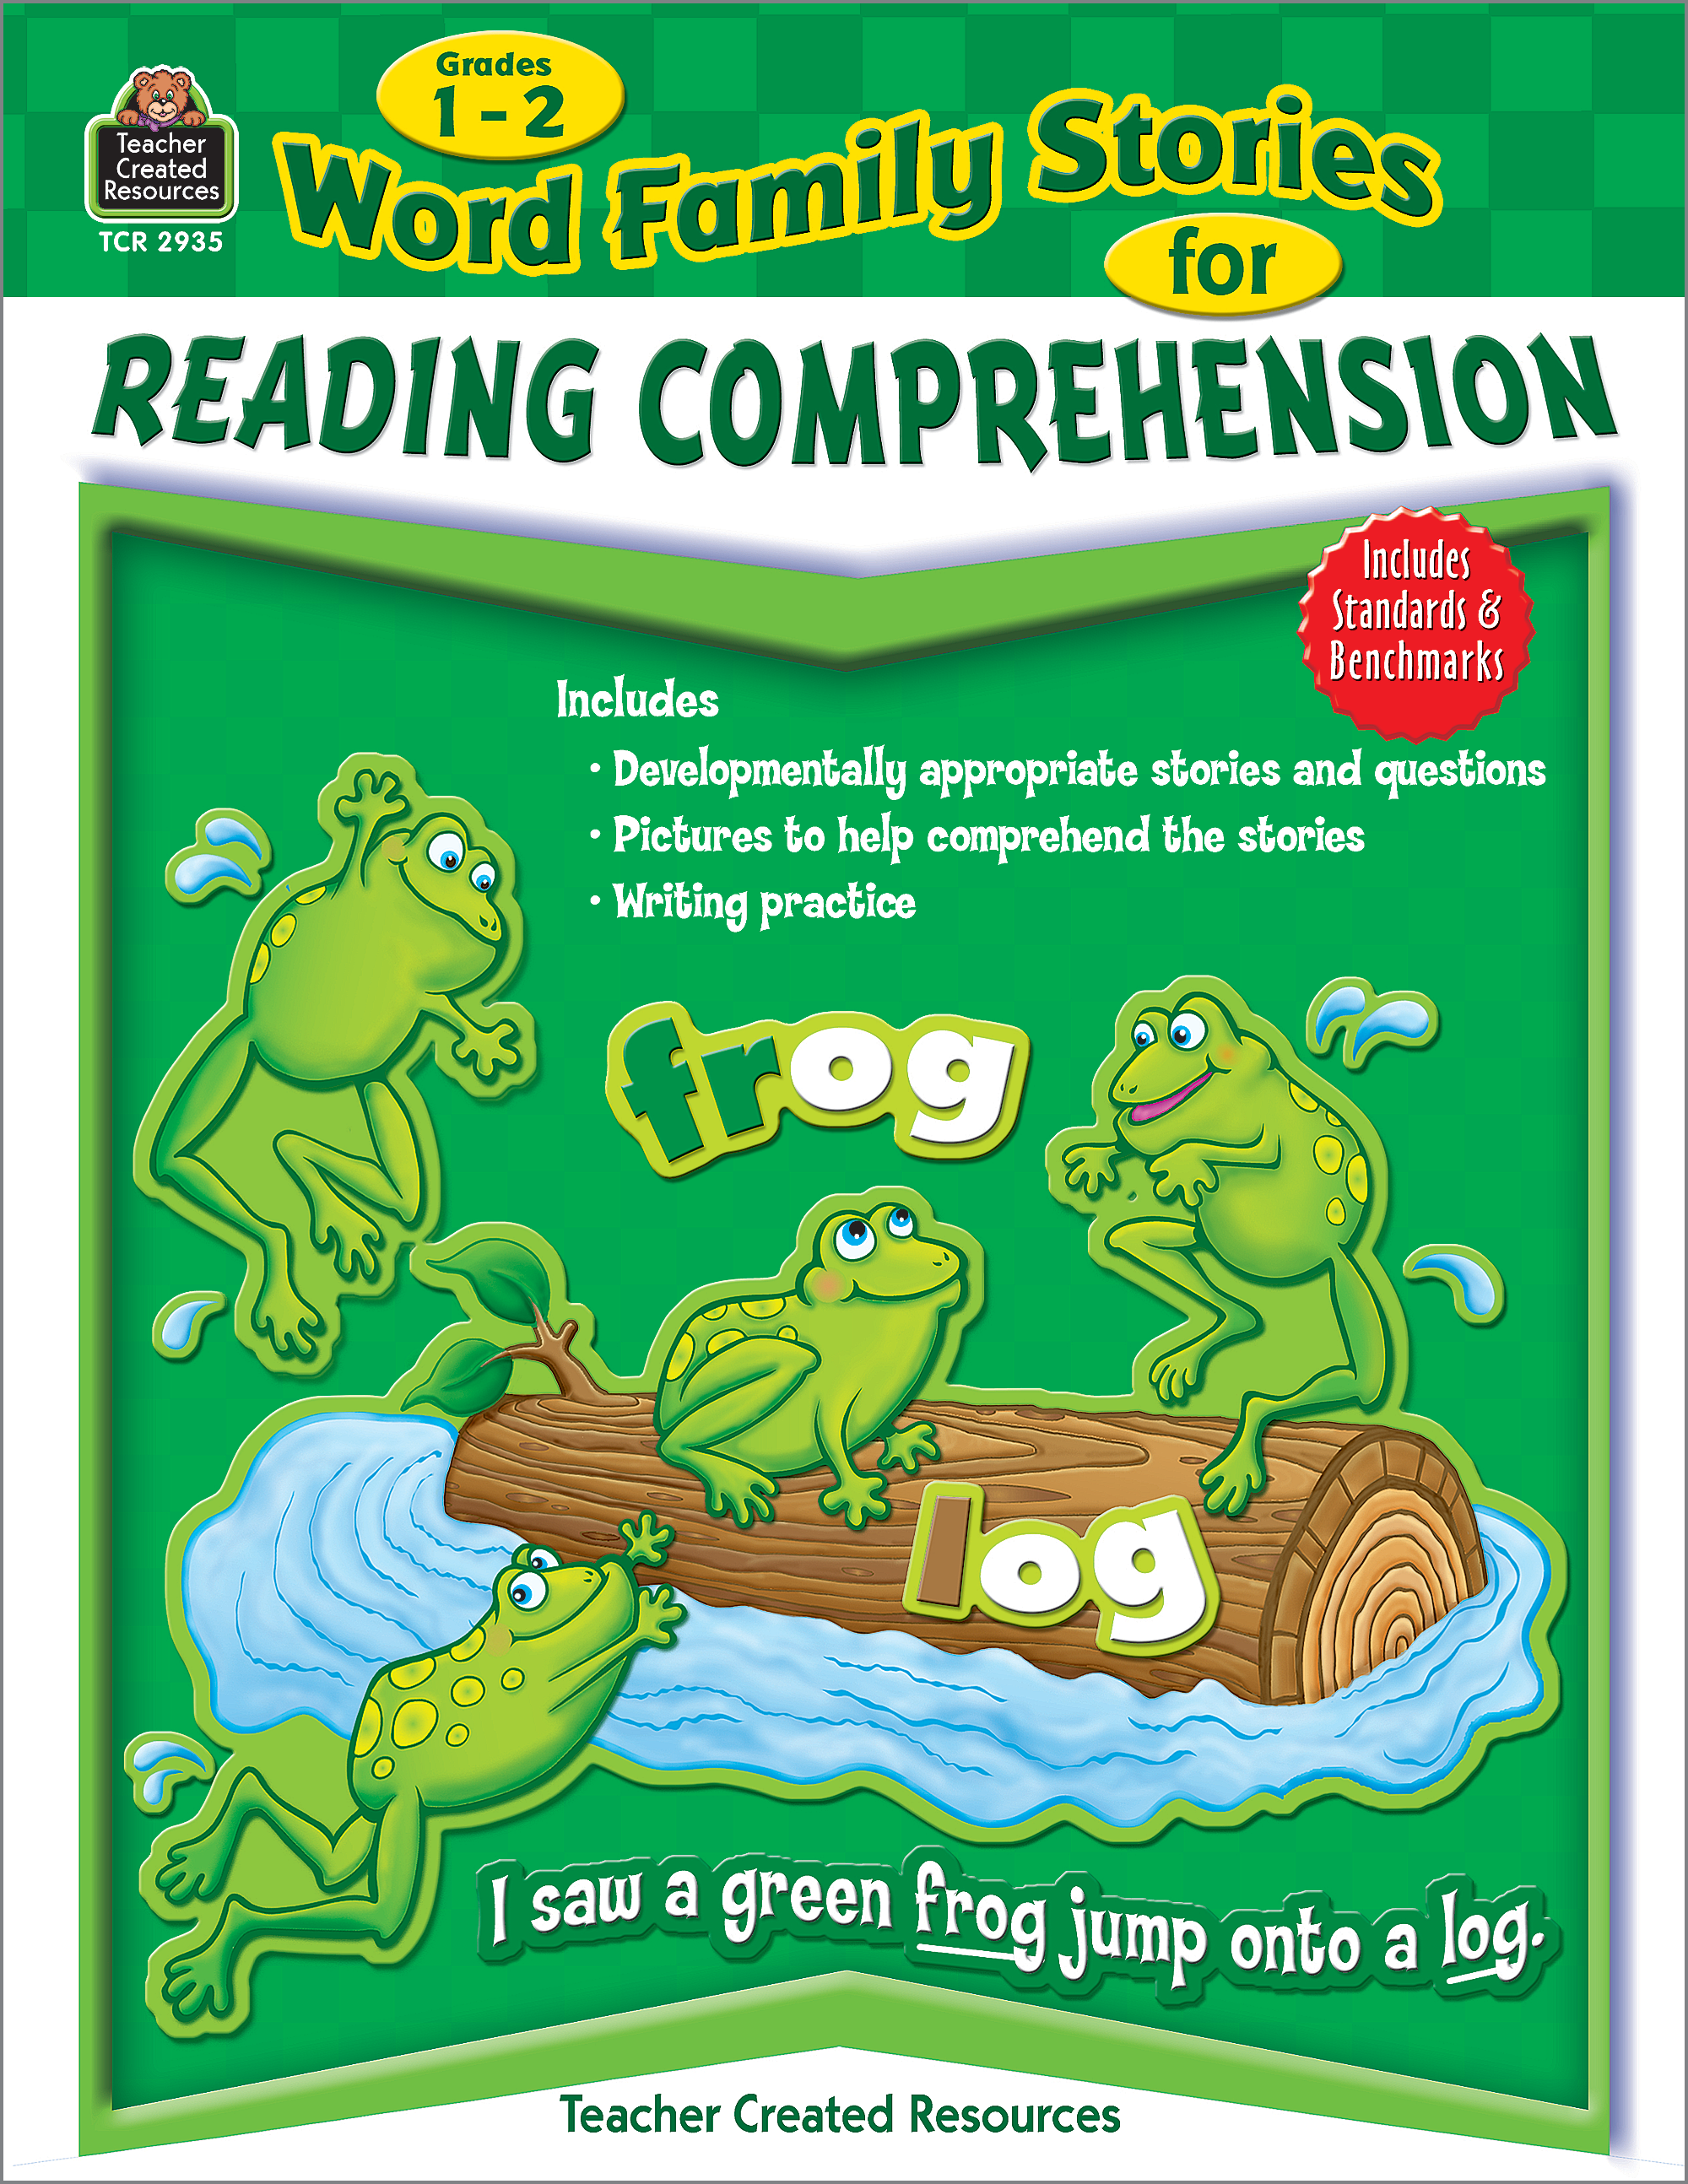 - Word Family Stories For Reading Comprehension Grade 1-2 - TCR2935